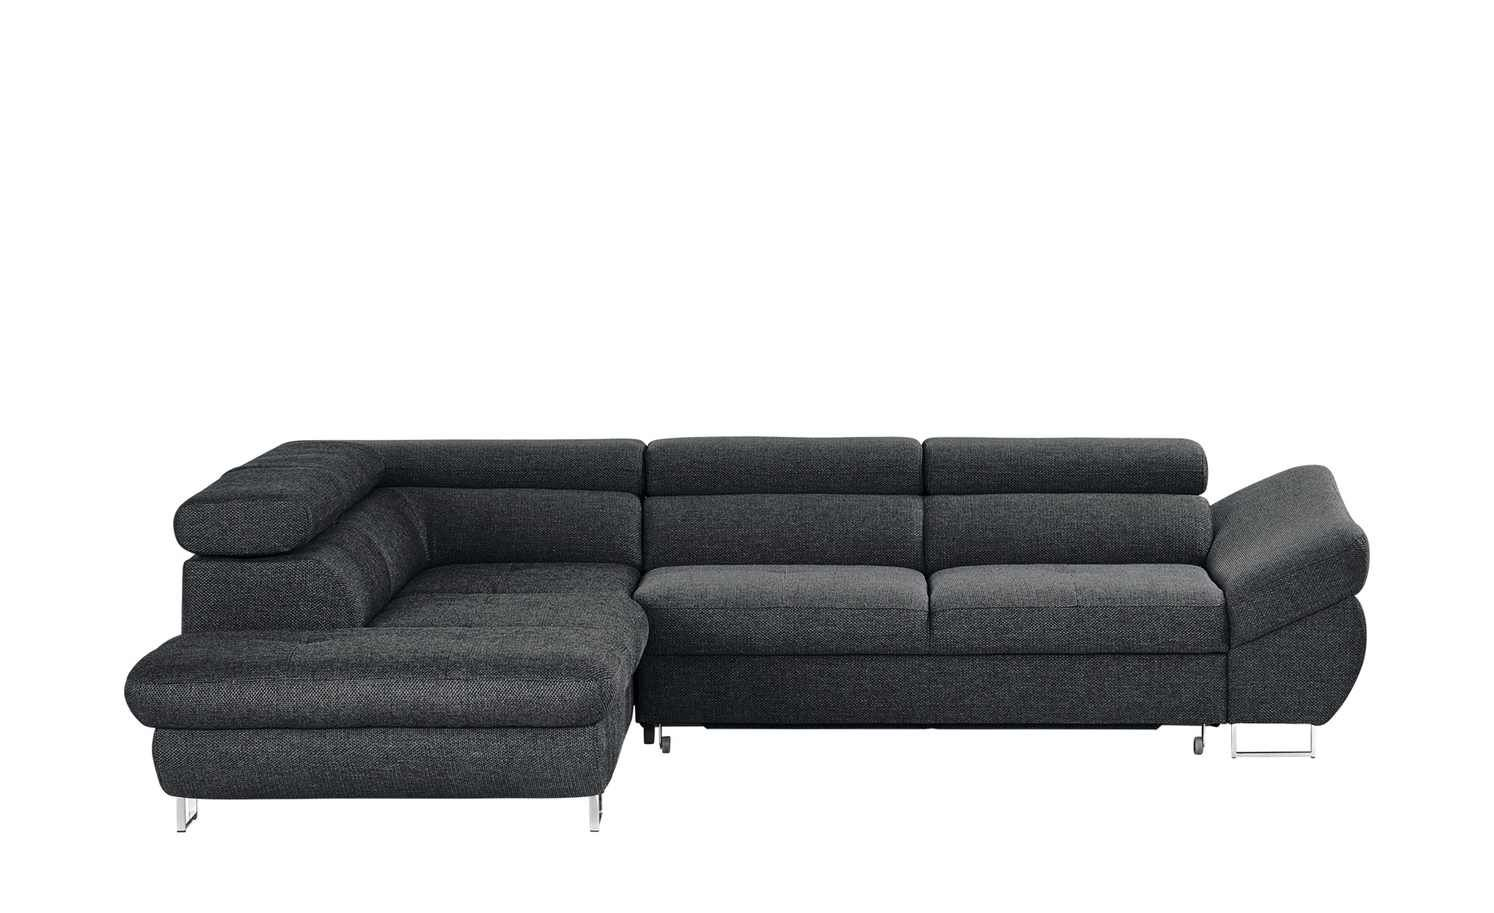 Ecksofa Clintwood Switch Ecksofa Grauschwarz Webstoff Fabio Living Room